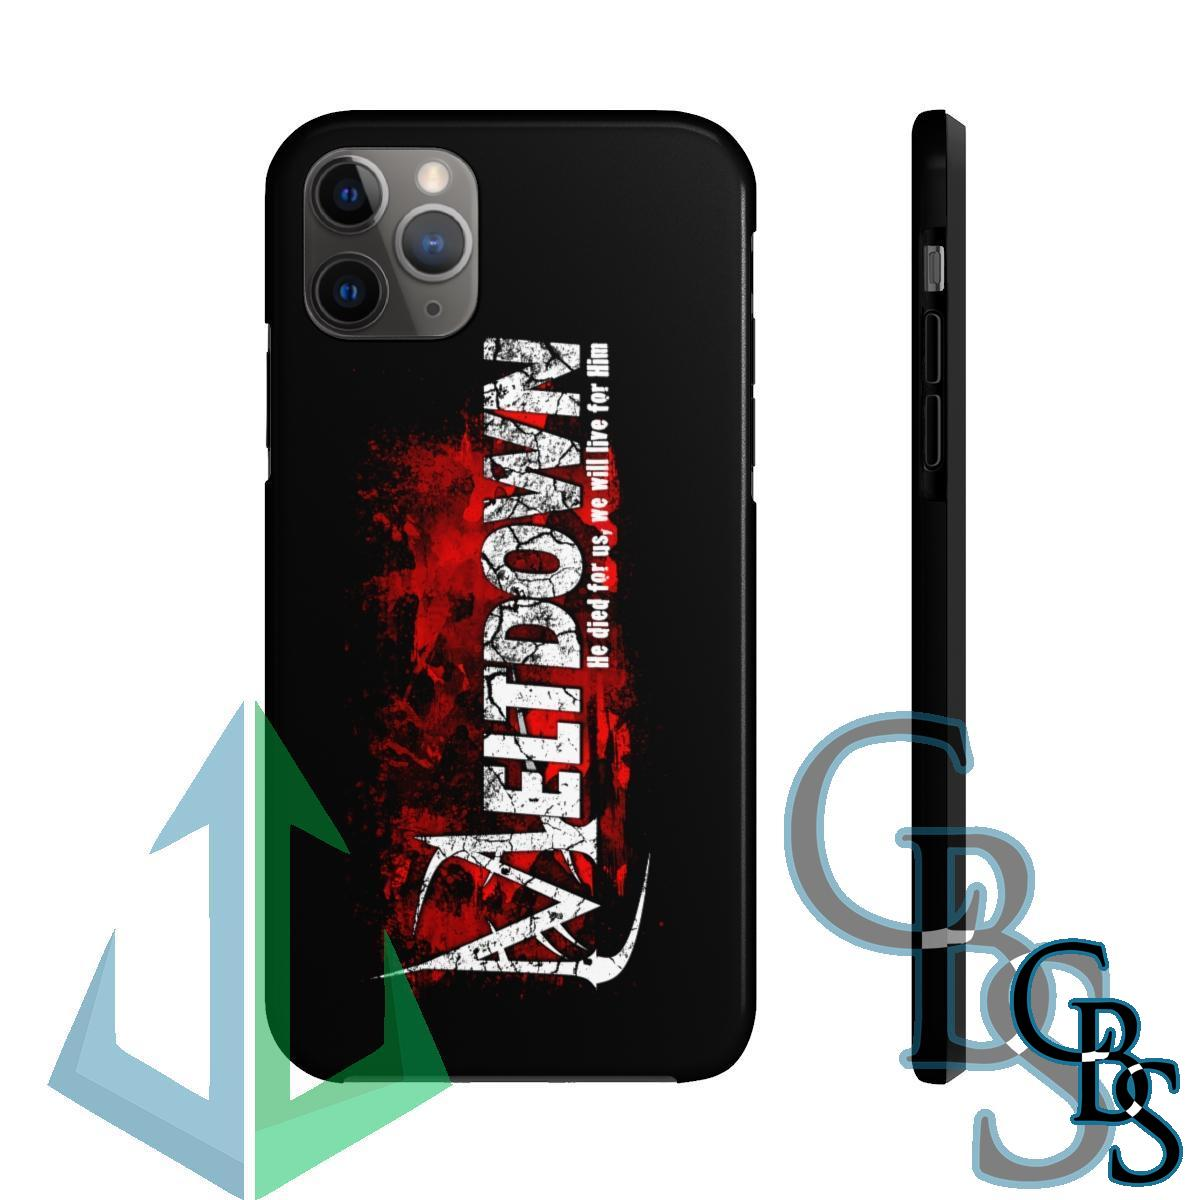 Meltdown He Died For Us Tough iPhone Cases (iPhone 7/7 Plus, iPhone 8/8 Plus, iPhone X, XS, XR, iPhone 11, 11 Pro, 11 Pro Max)